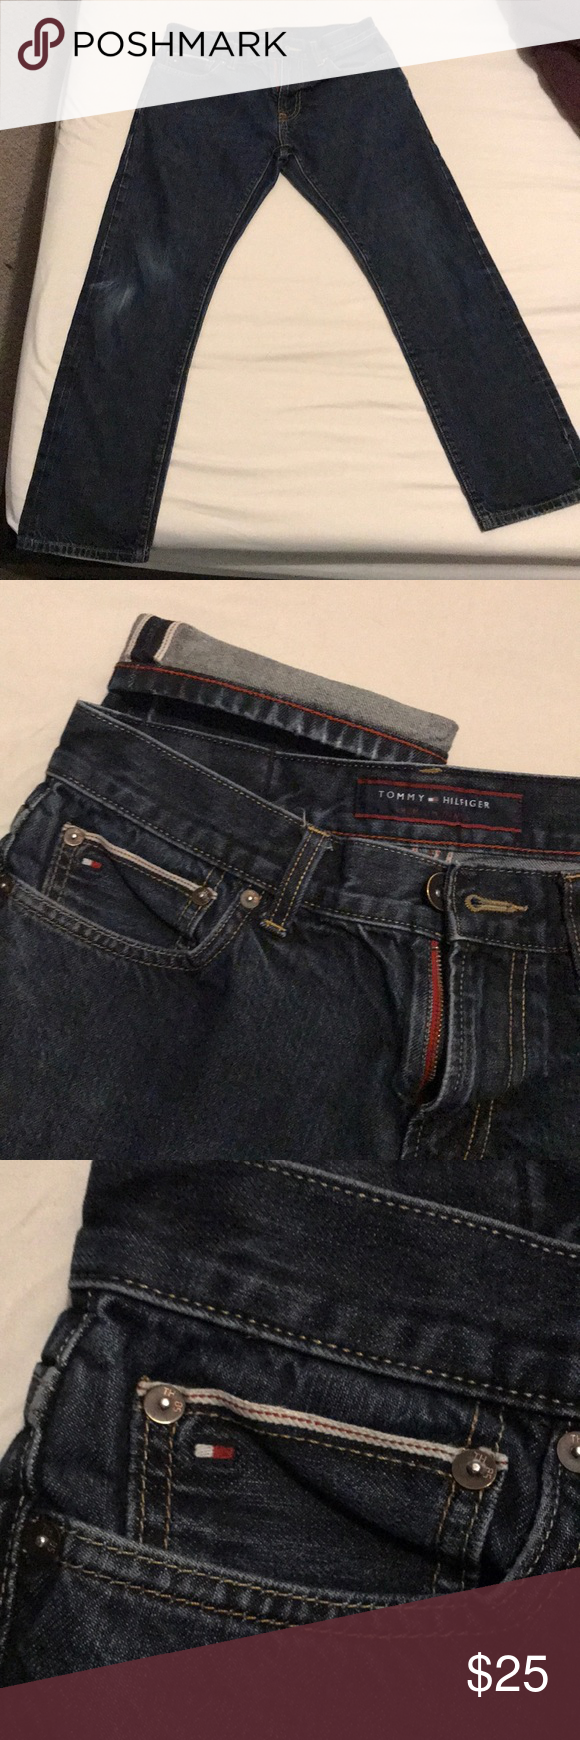 f6b99a65a Tommy Hilfiger Jeans Selvedge Vintage Tommy Hilfiger Selvedge Denim Size  30x30 Slim Straight Fit Used 25